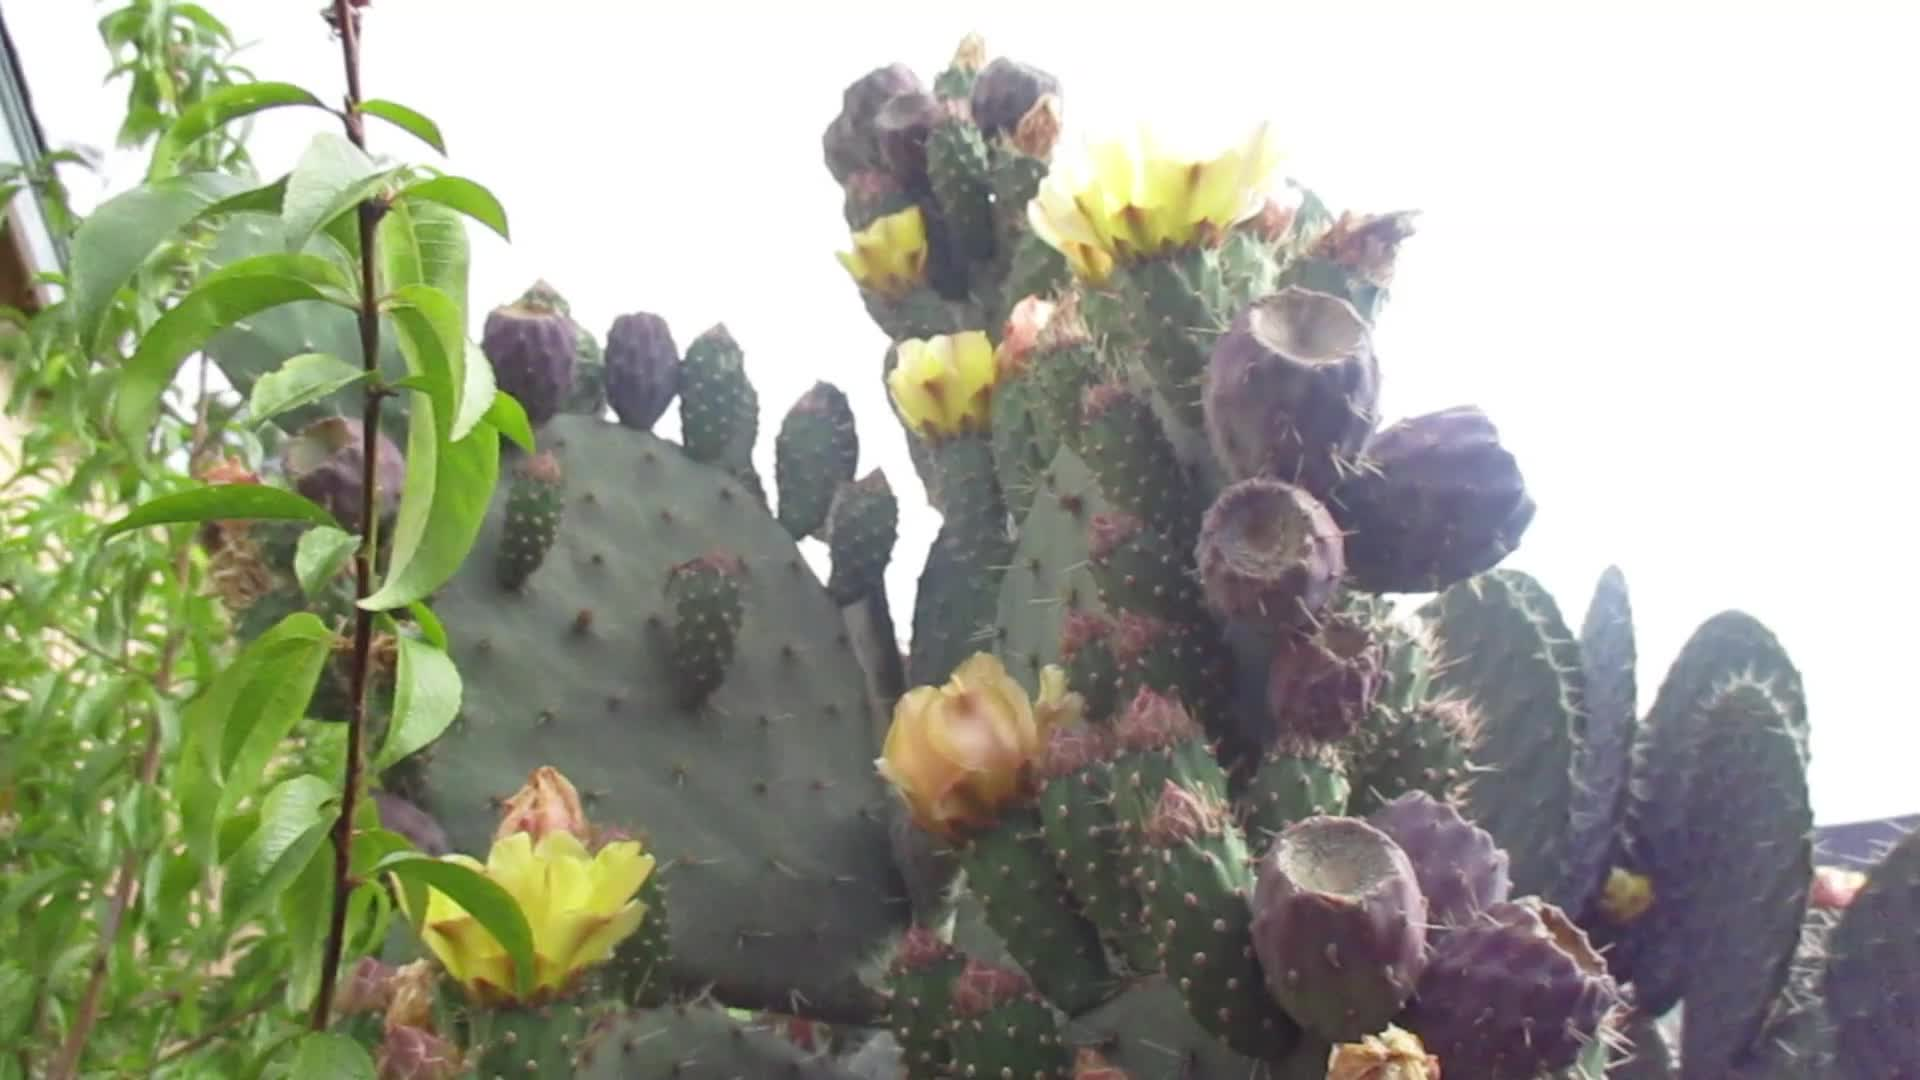 OPUNTIA MATUDAE XOCONOSTLE CACTUS PLANT WITH FLOWERS AND FRUIT